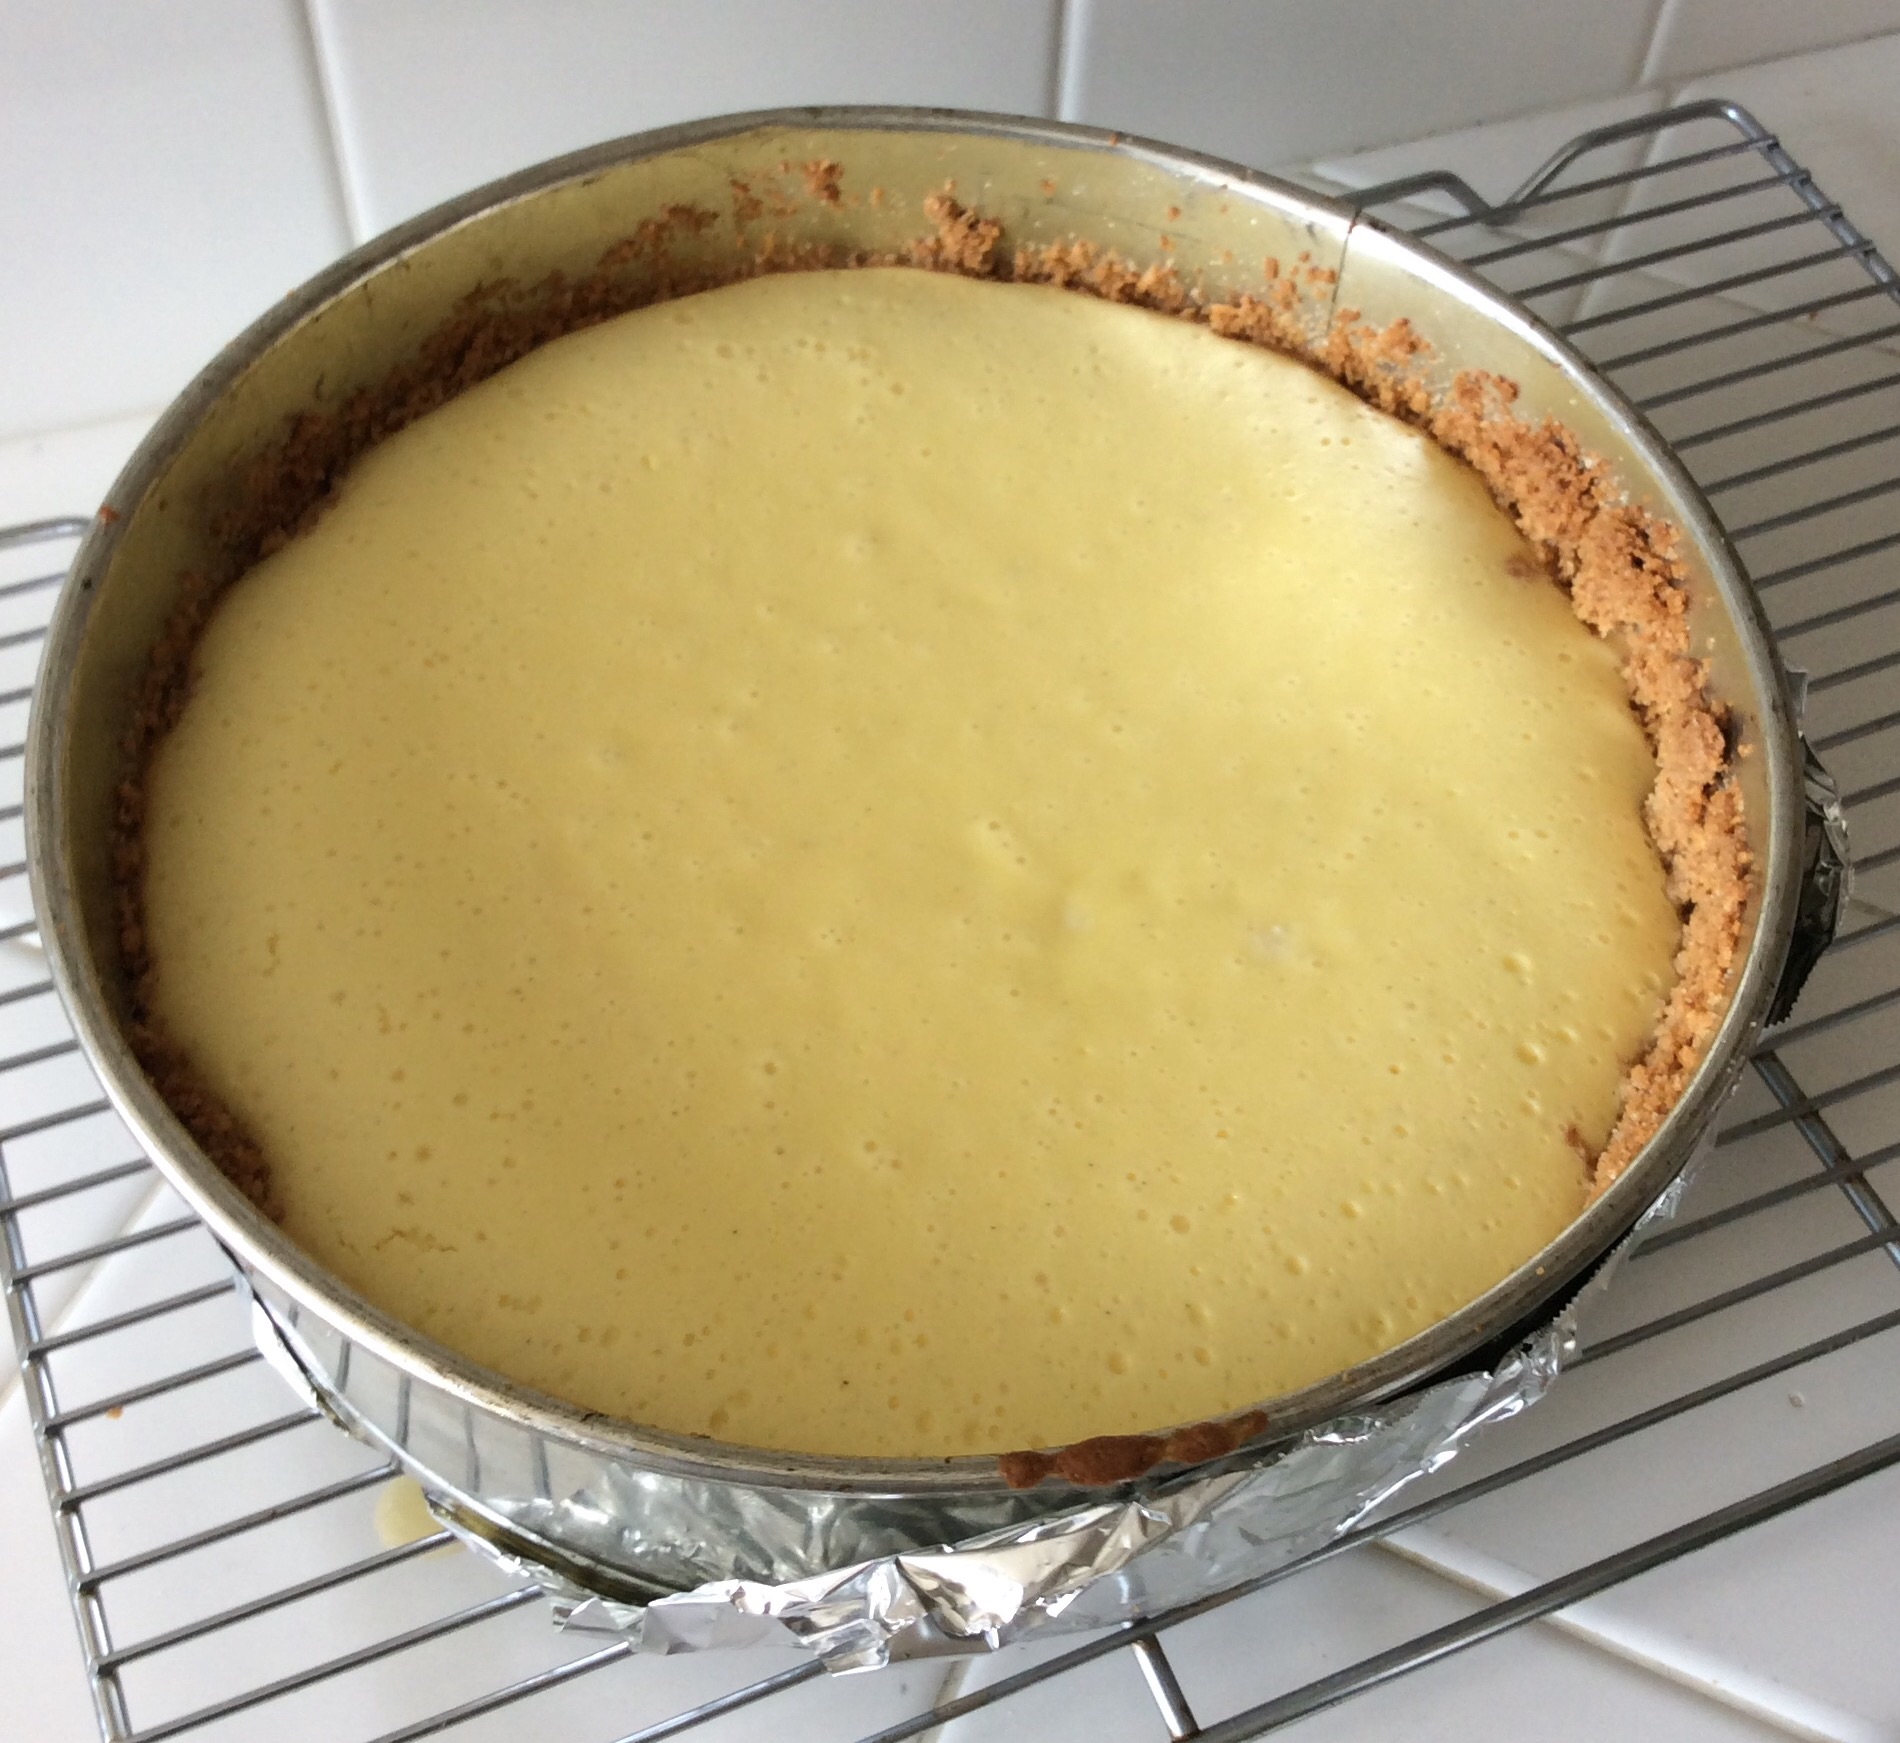 Three Cities of Spain cheesecake after the first baking